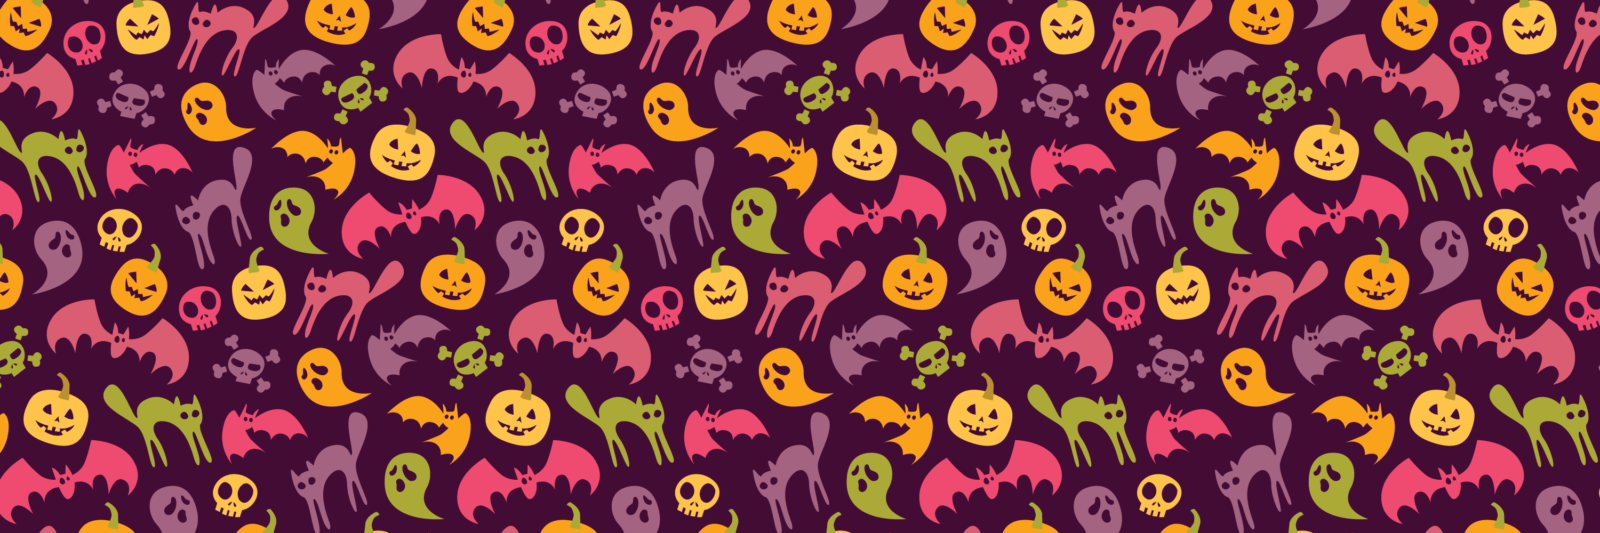 Neon halloween - purple variation